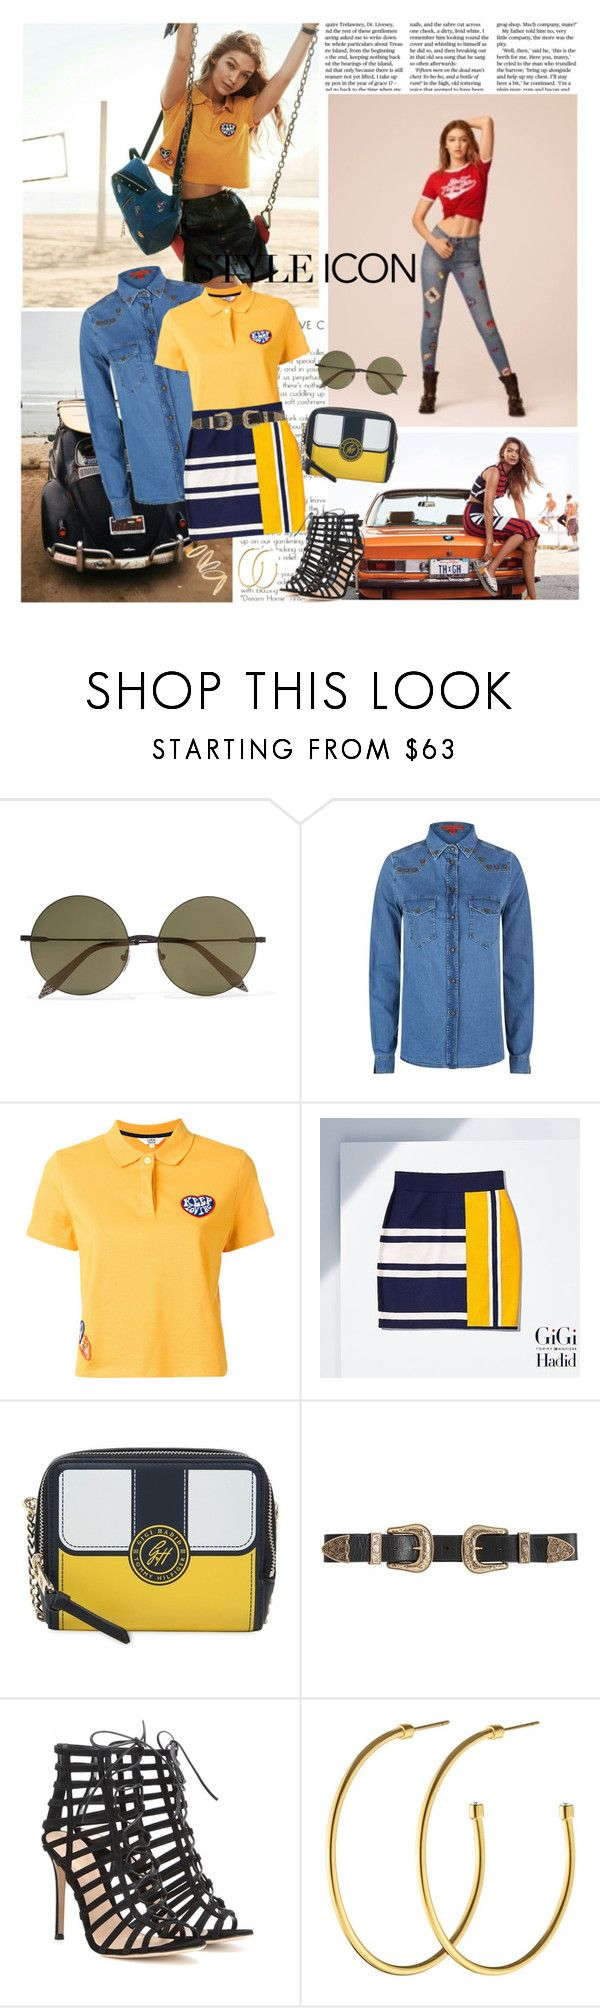 """Miss Hadid"" by ita-varela ❤ liked on Polyvore featuring Victoria Beckham, Tommy Hilfiger, B-Low the Belt, Gianvito Rossi, Dyrberg/Kern and Madewell"